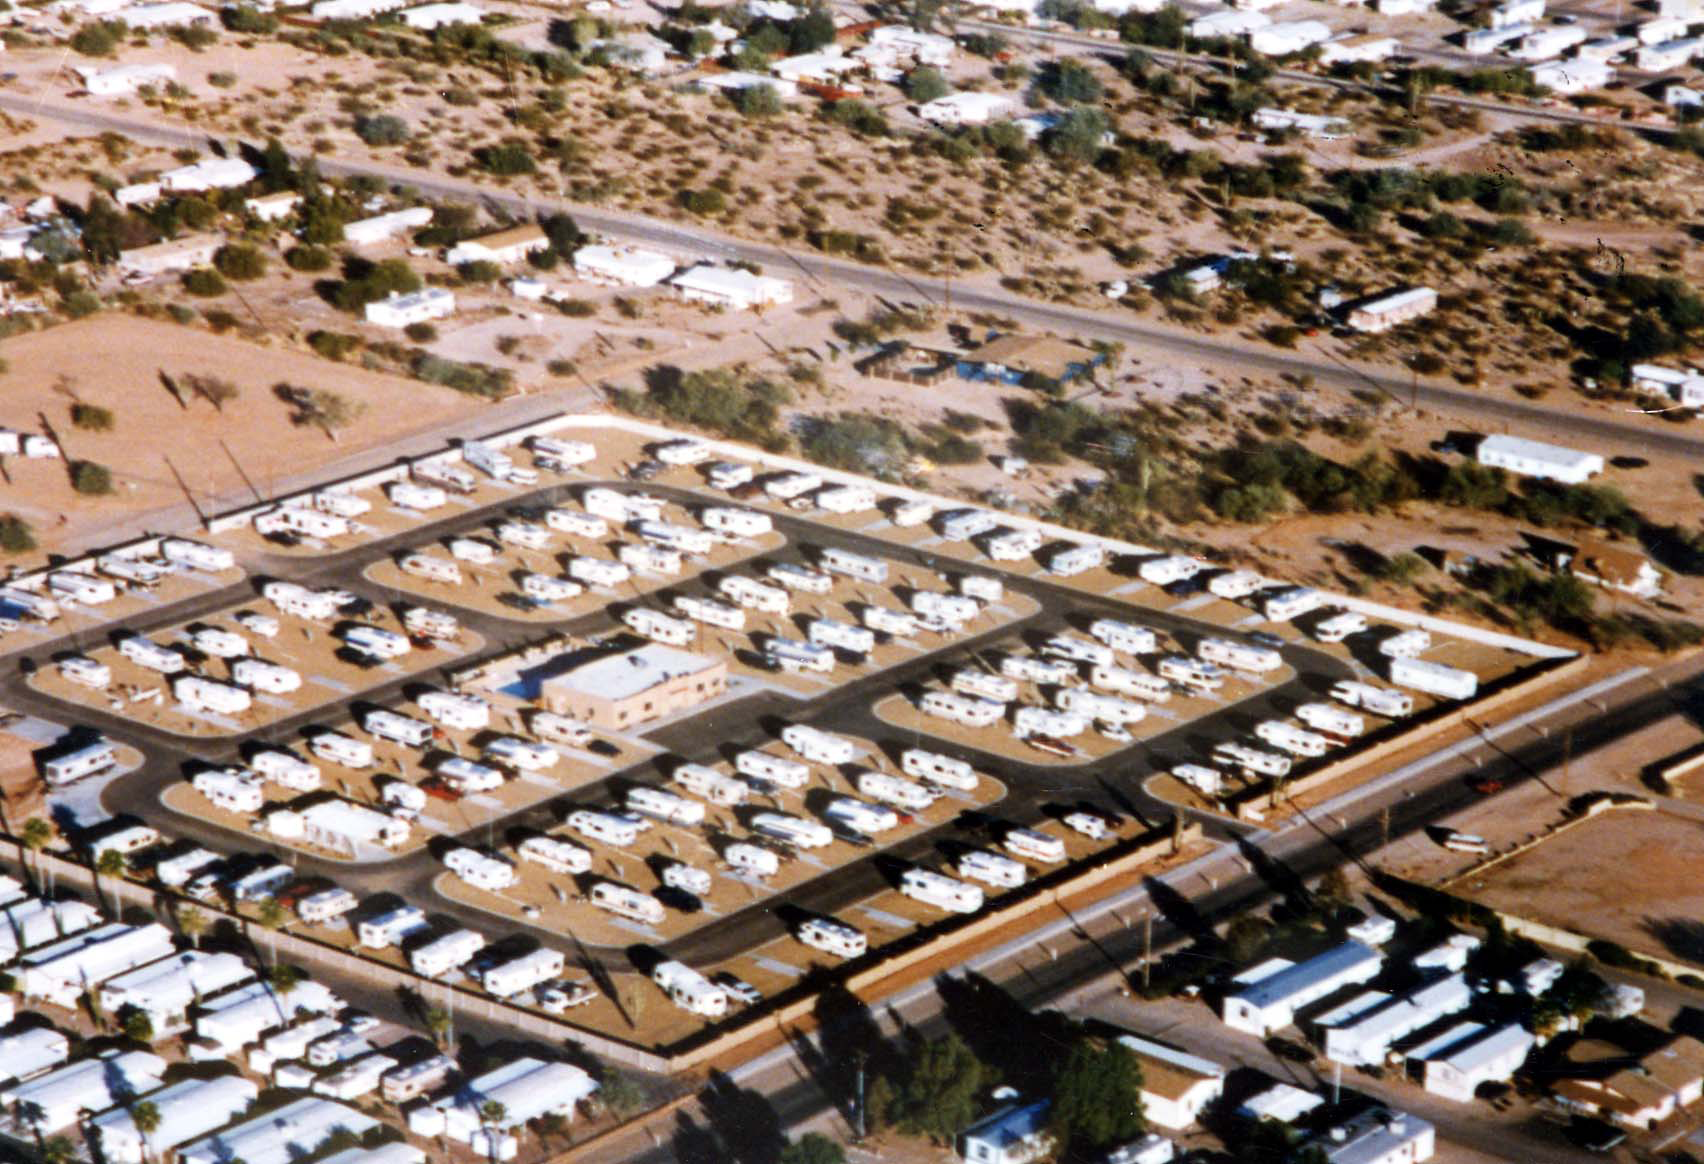 Santa Fe RV Park 1800 N Iron Wood Drive Apache Junction AZ 85120 United States